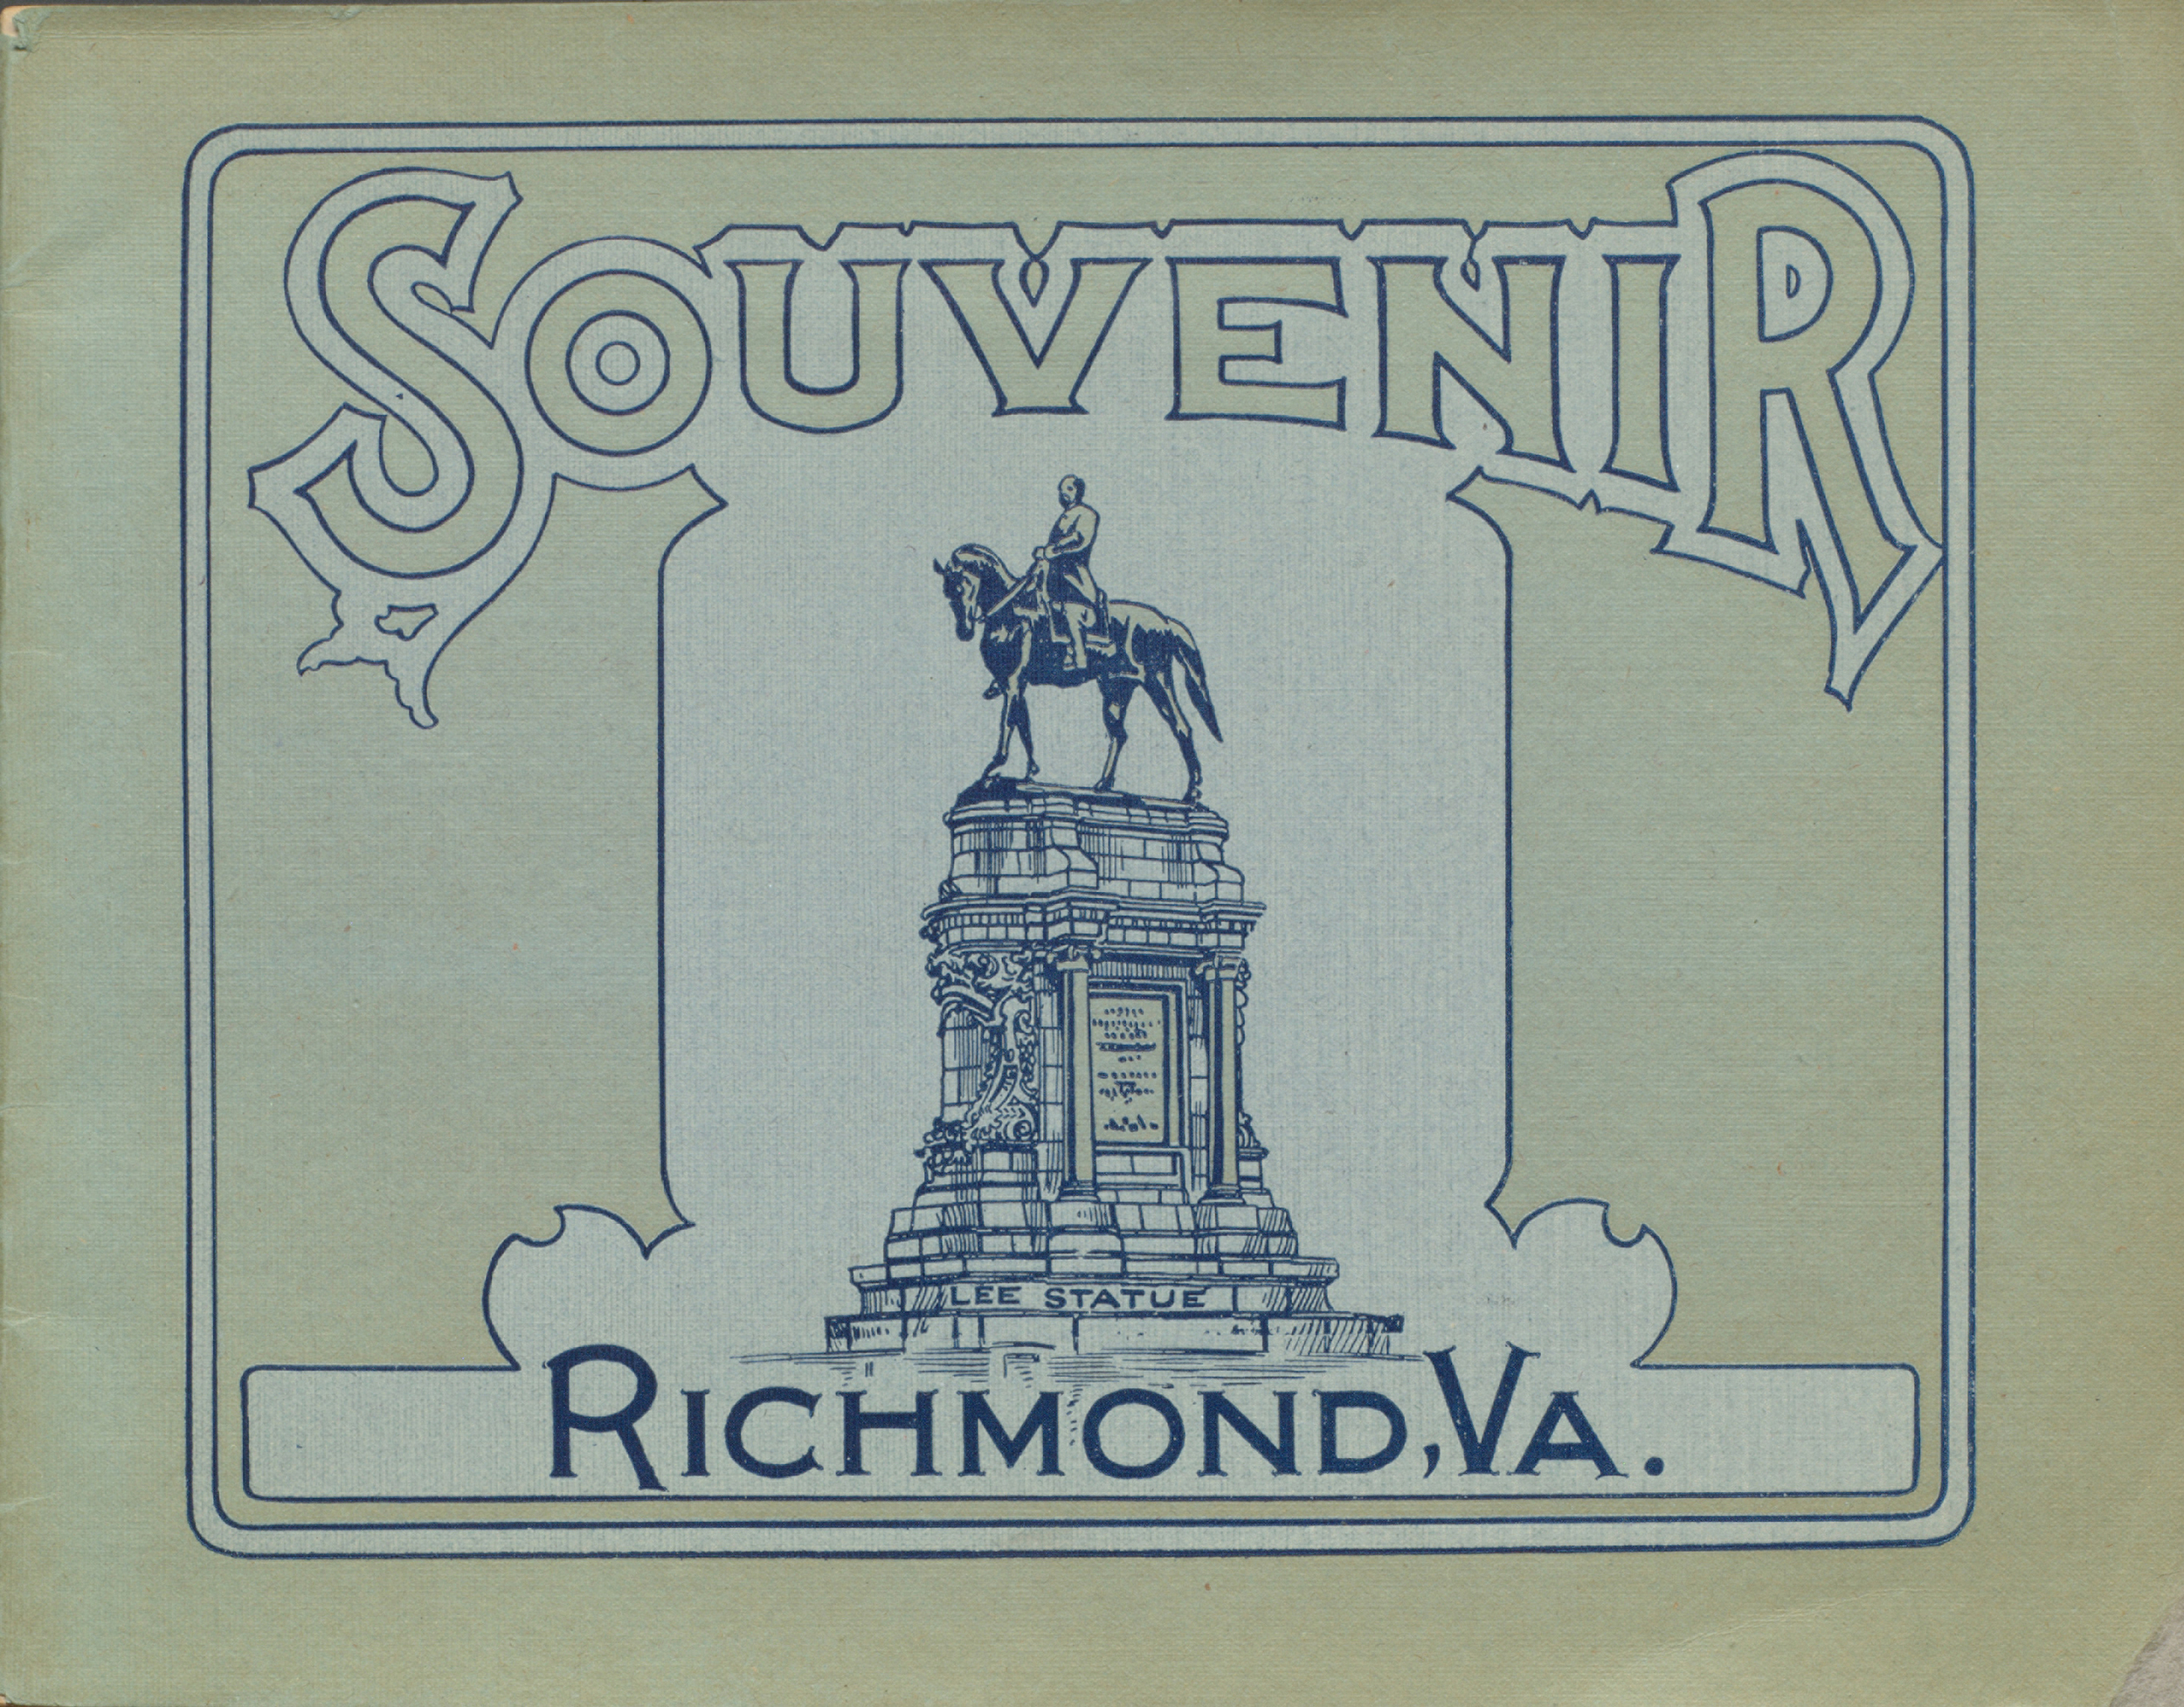 Richmond; Virginia and Historic Surroundings. : Containing illustrations of the architectural and scenic features of this historical city. The capital of Virigina and old capital of the Southern Confederacy. One of the most beautiful and interesting cities of the United States. Cover.